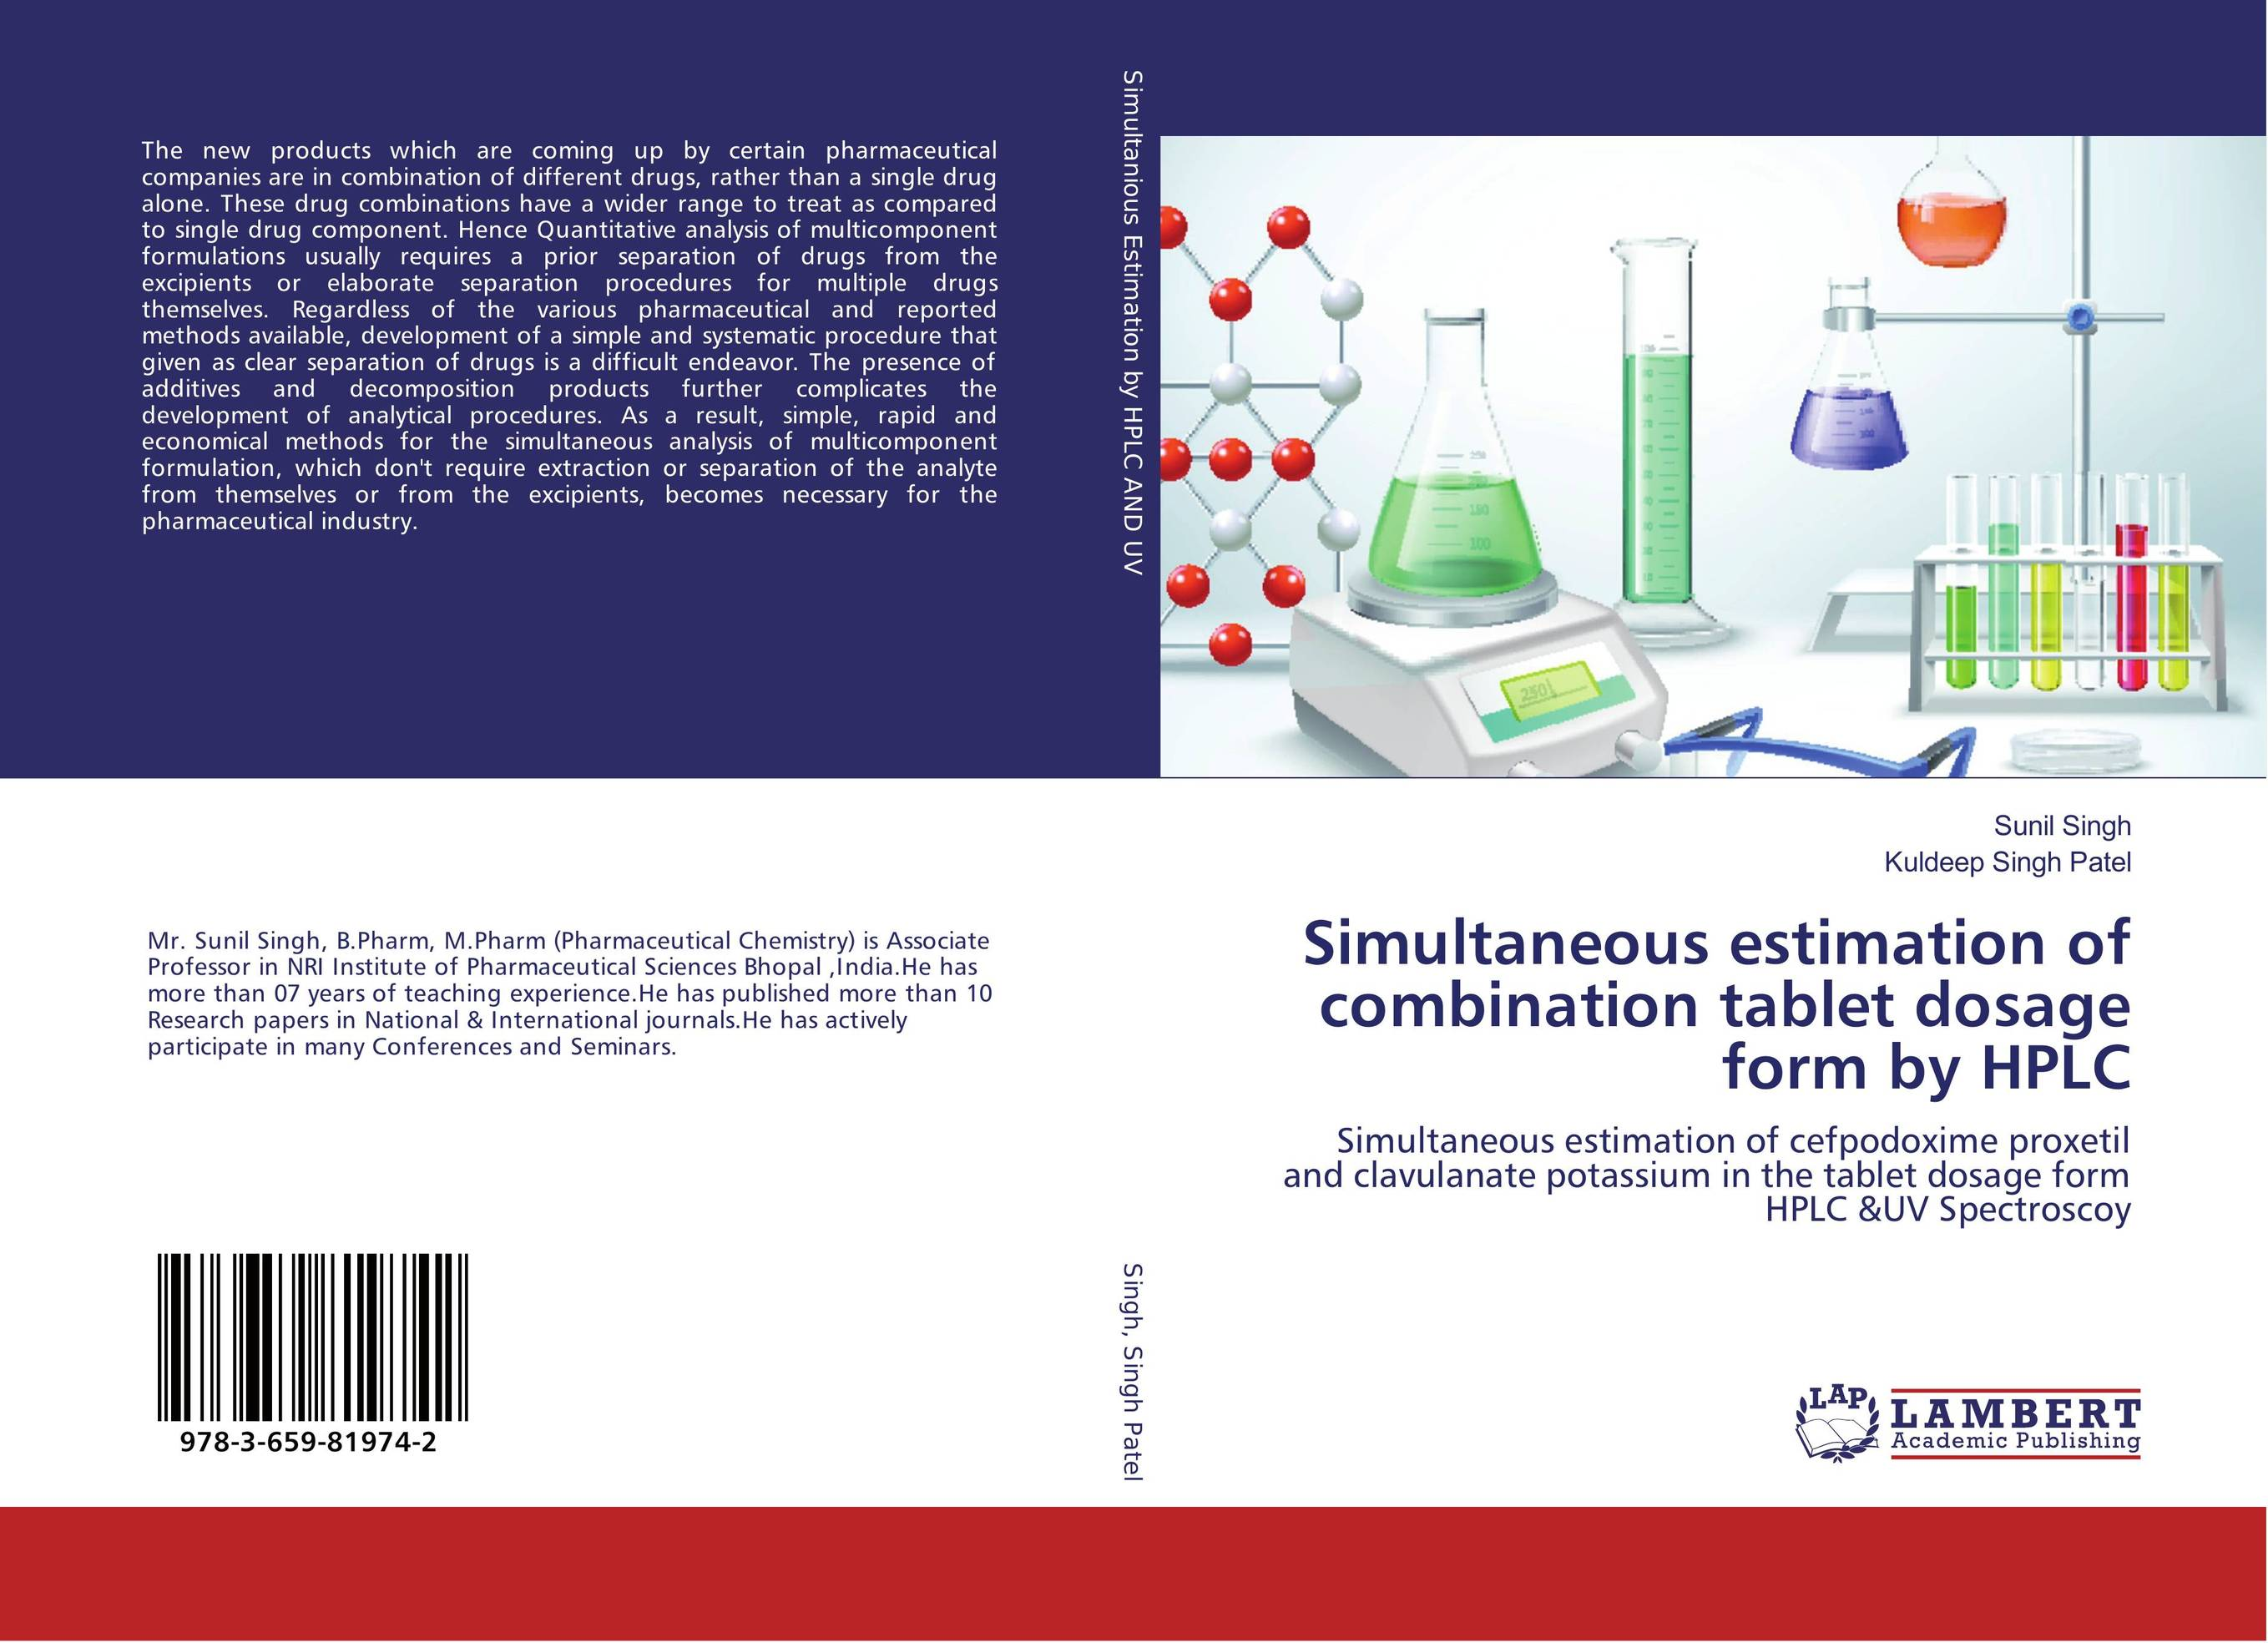 Simultaneous estimation of combination tablet dosage form by HPLC harry g brittain analytical profiles of drug substances and excipients 29